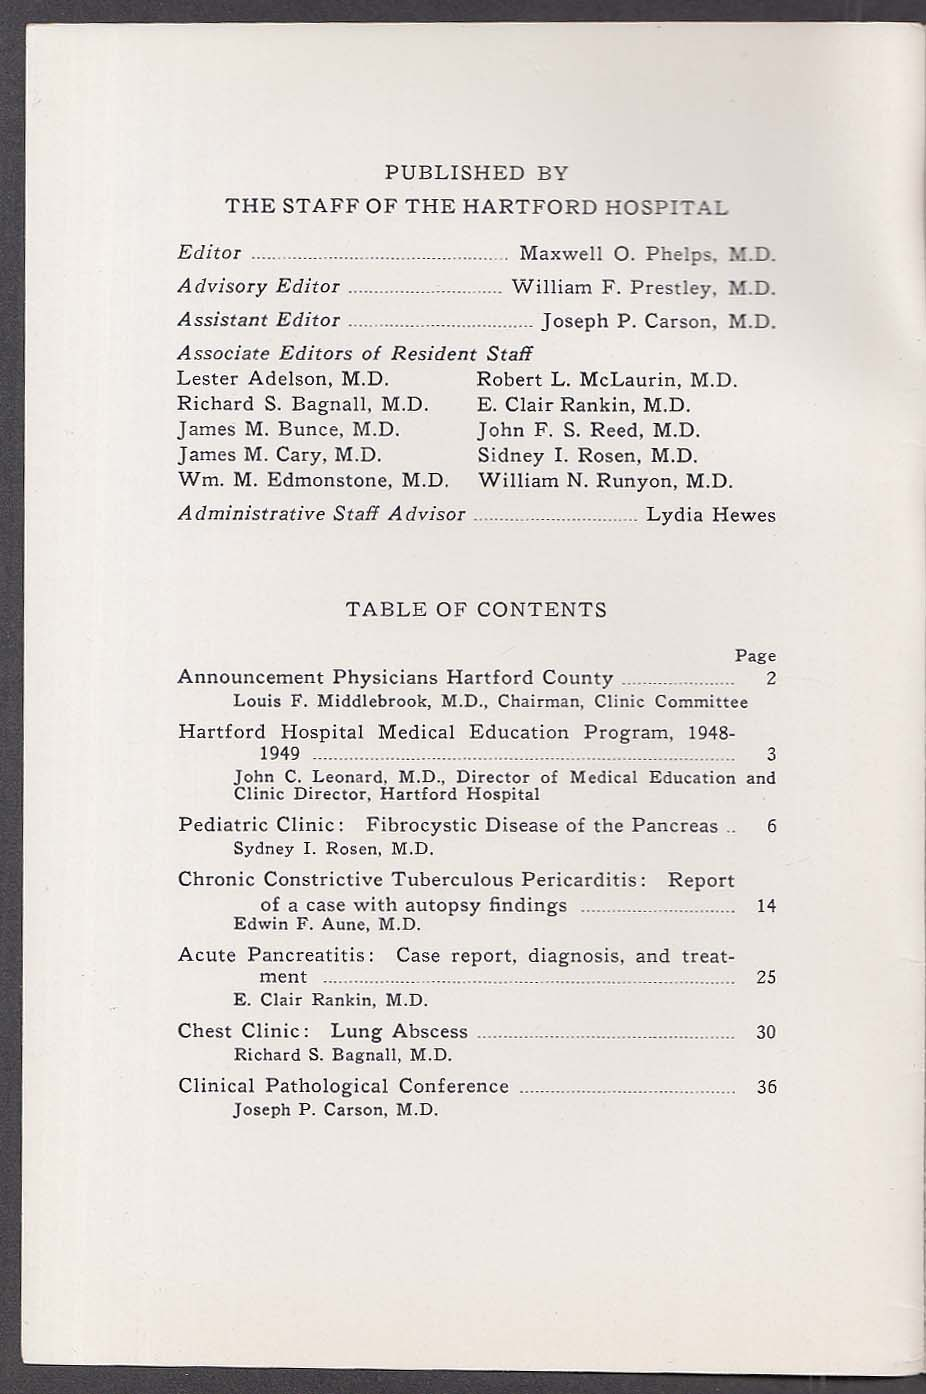 HARTFORD HOSPITAL BULLETIN Pancreatic Fibrocysts tuberulous pericarditis 10 1948